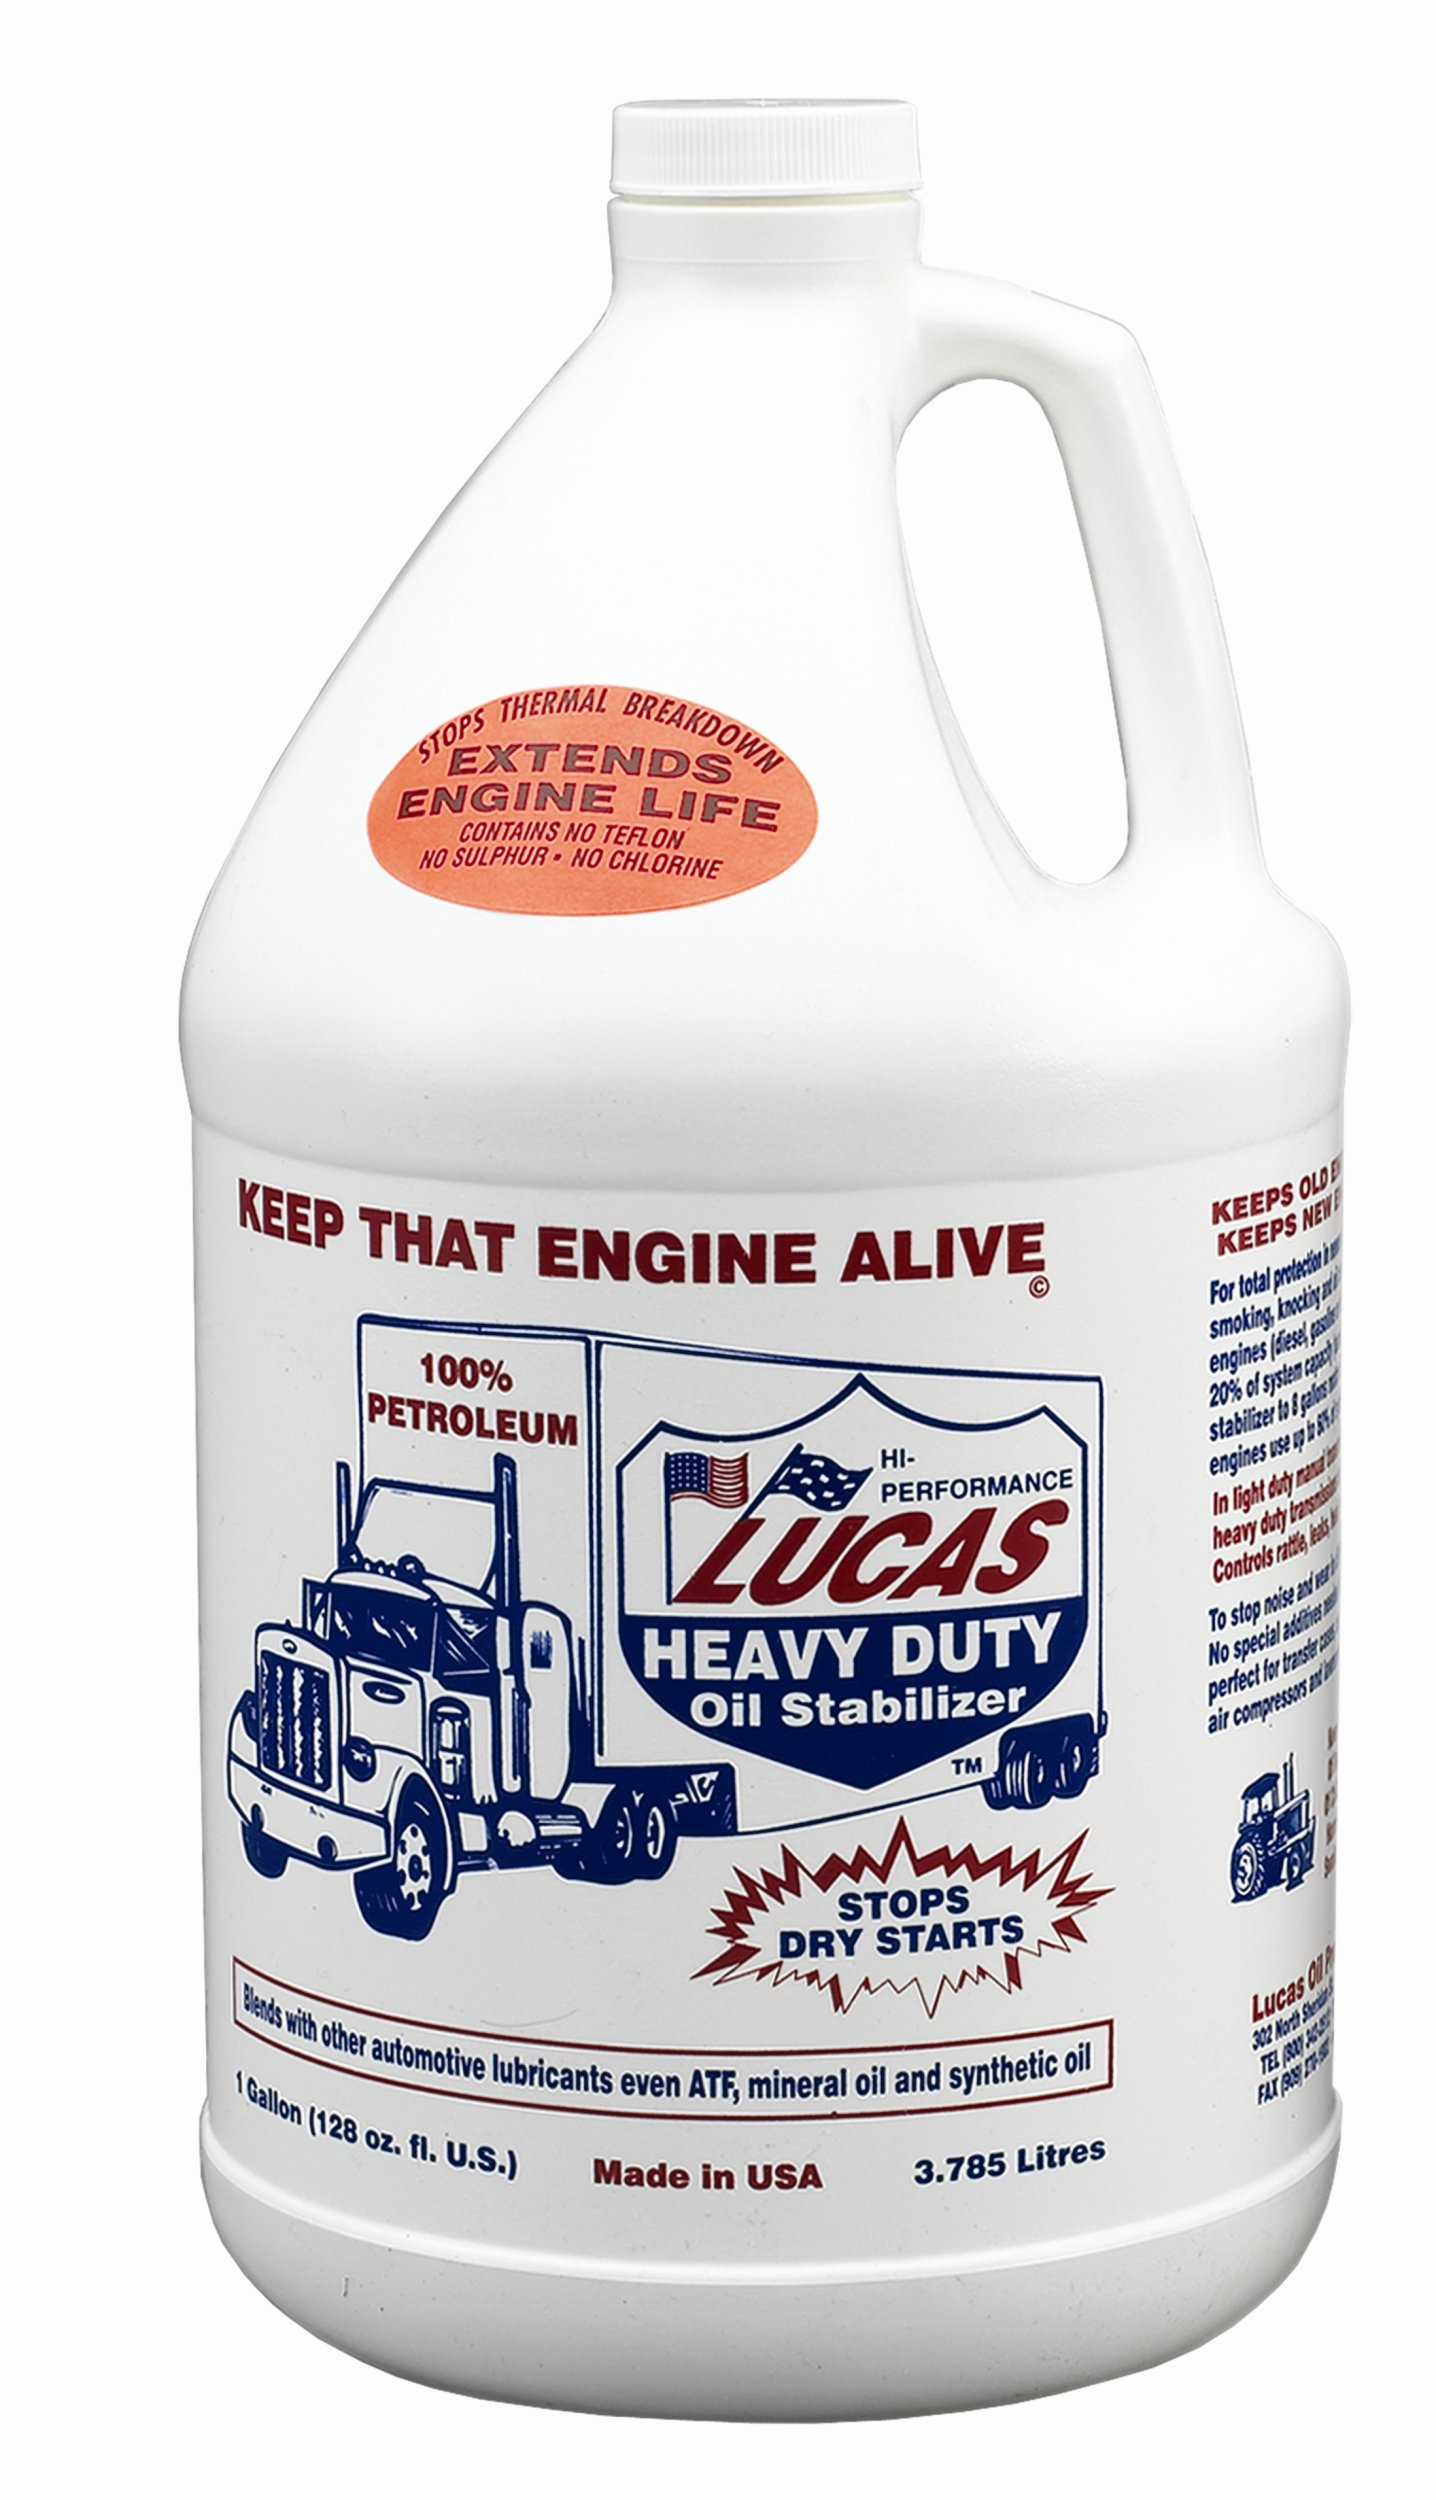 Lucas Oil 10015-PK1 Heavy Duty Oil Stabilizer - 5 Gallon by Lucas